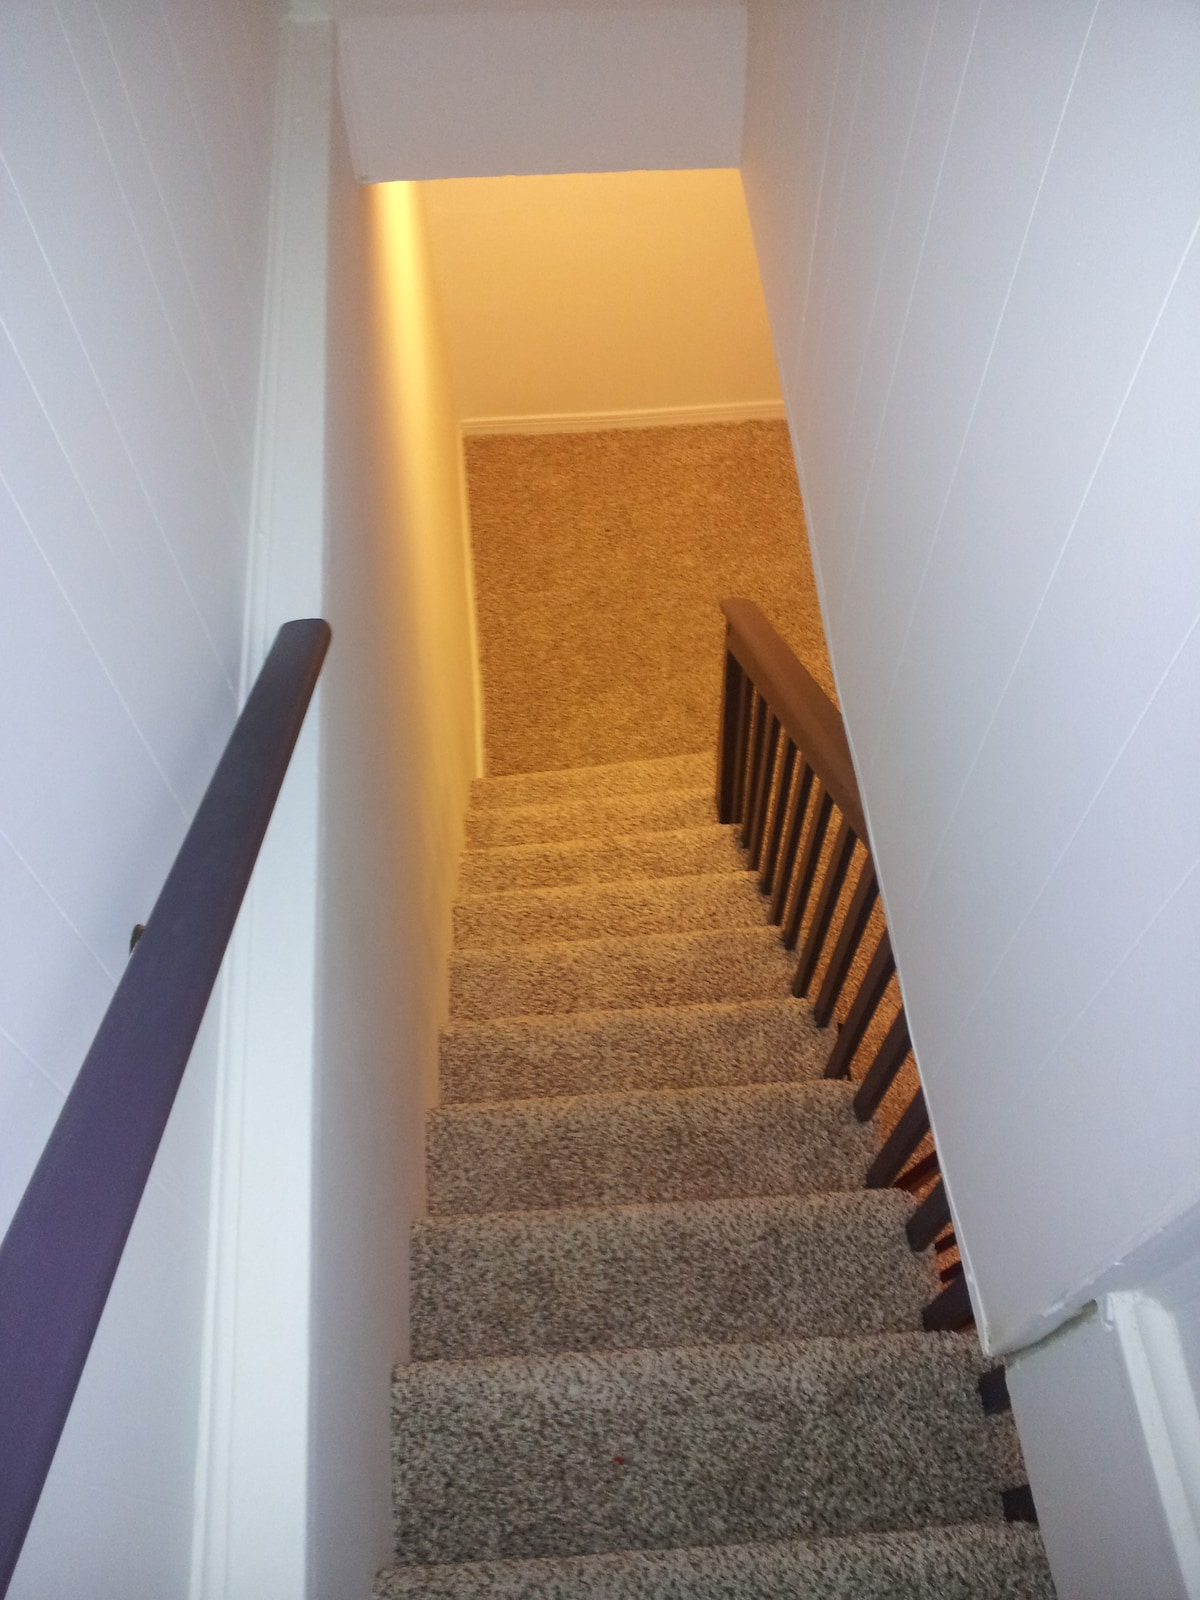 Stairs from main level to basement apartment...